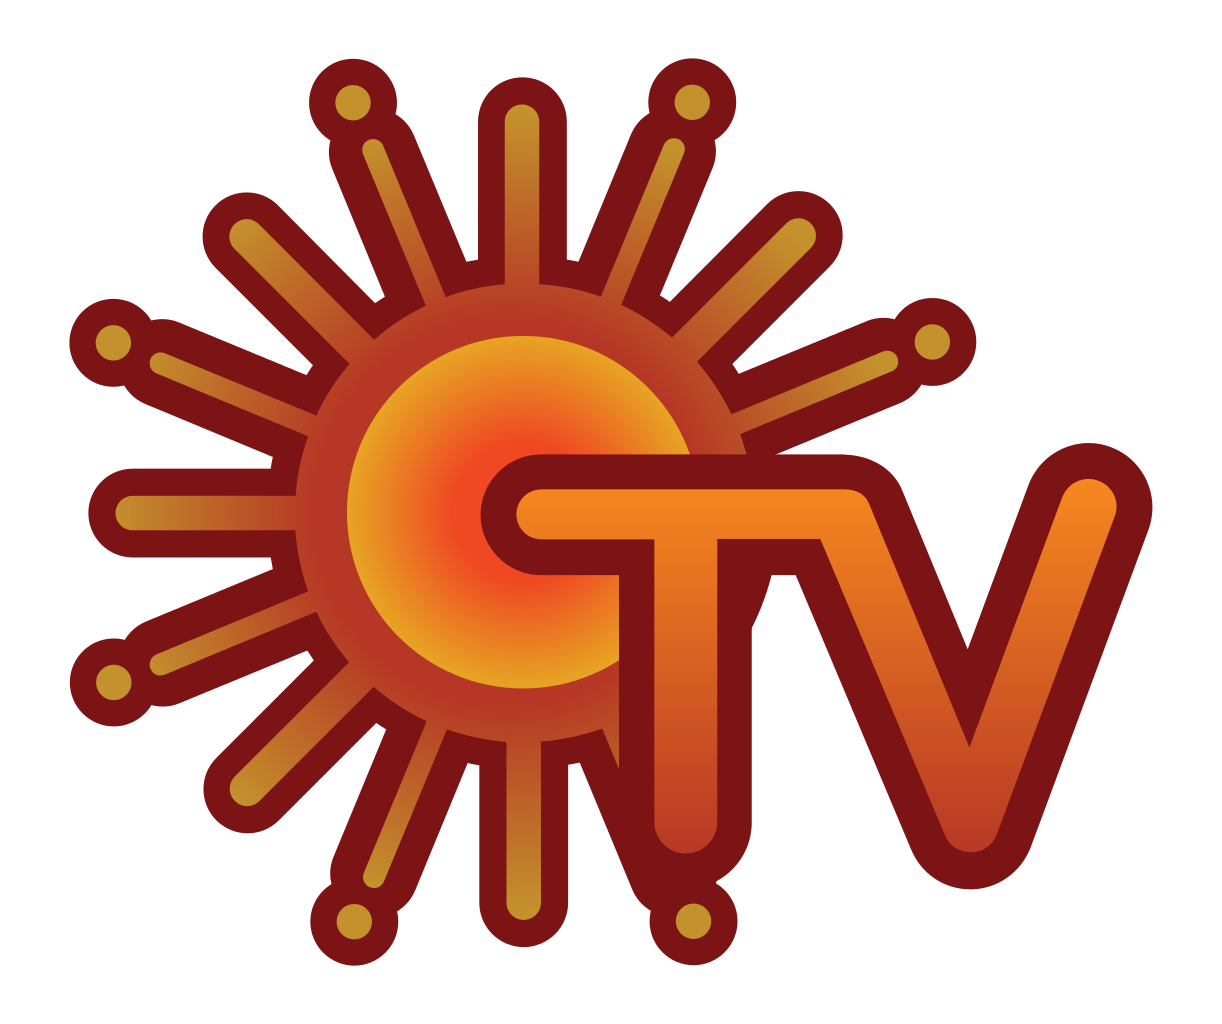 Sun TV Network Phone Number, Office Address, Email